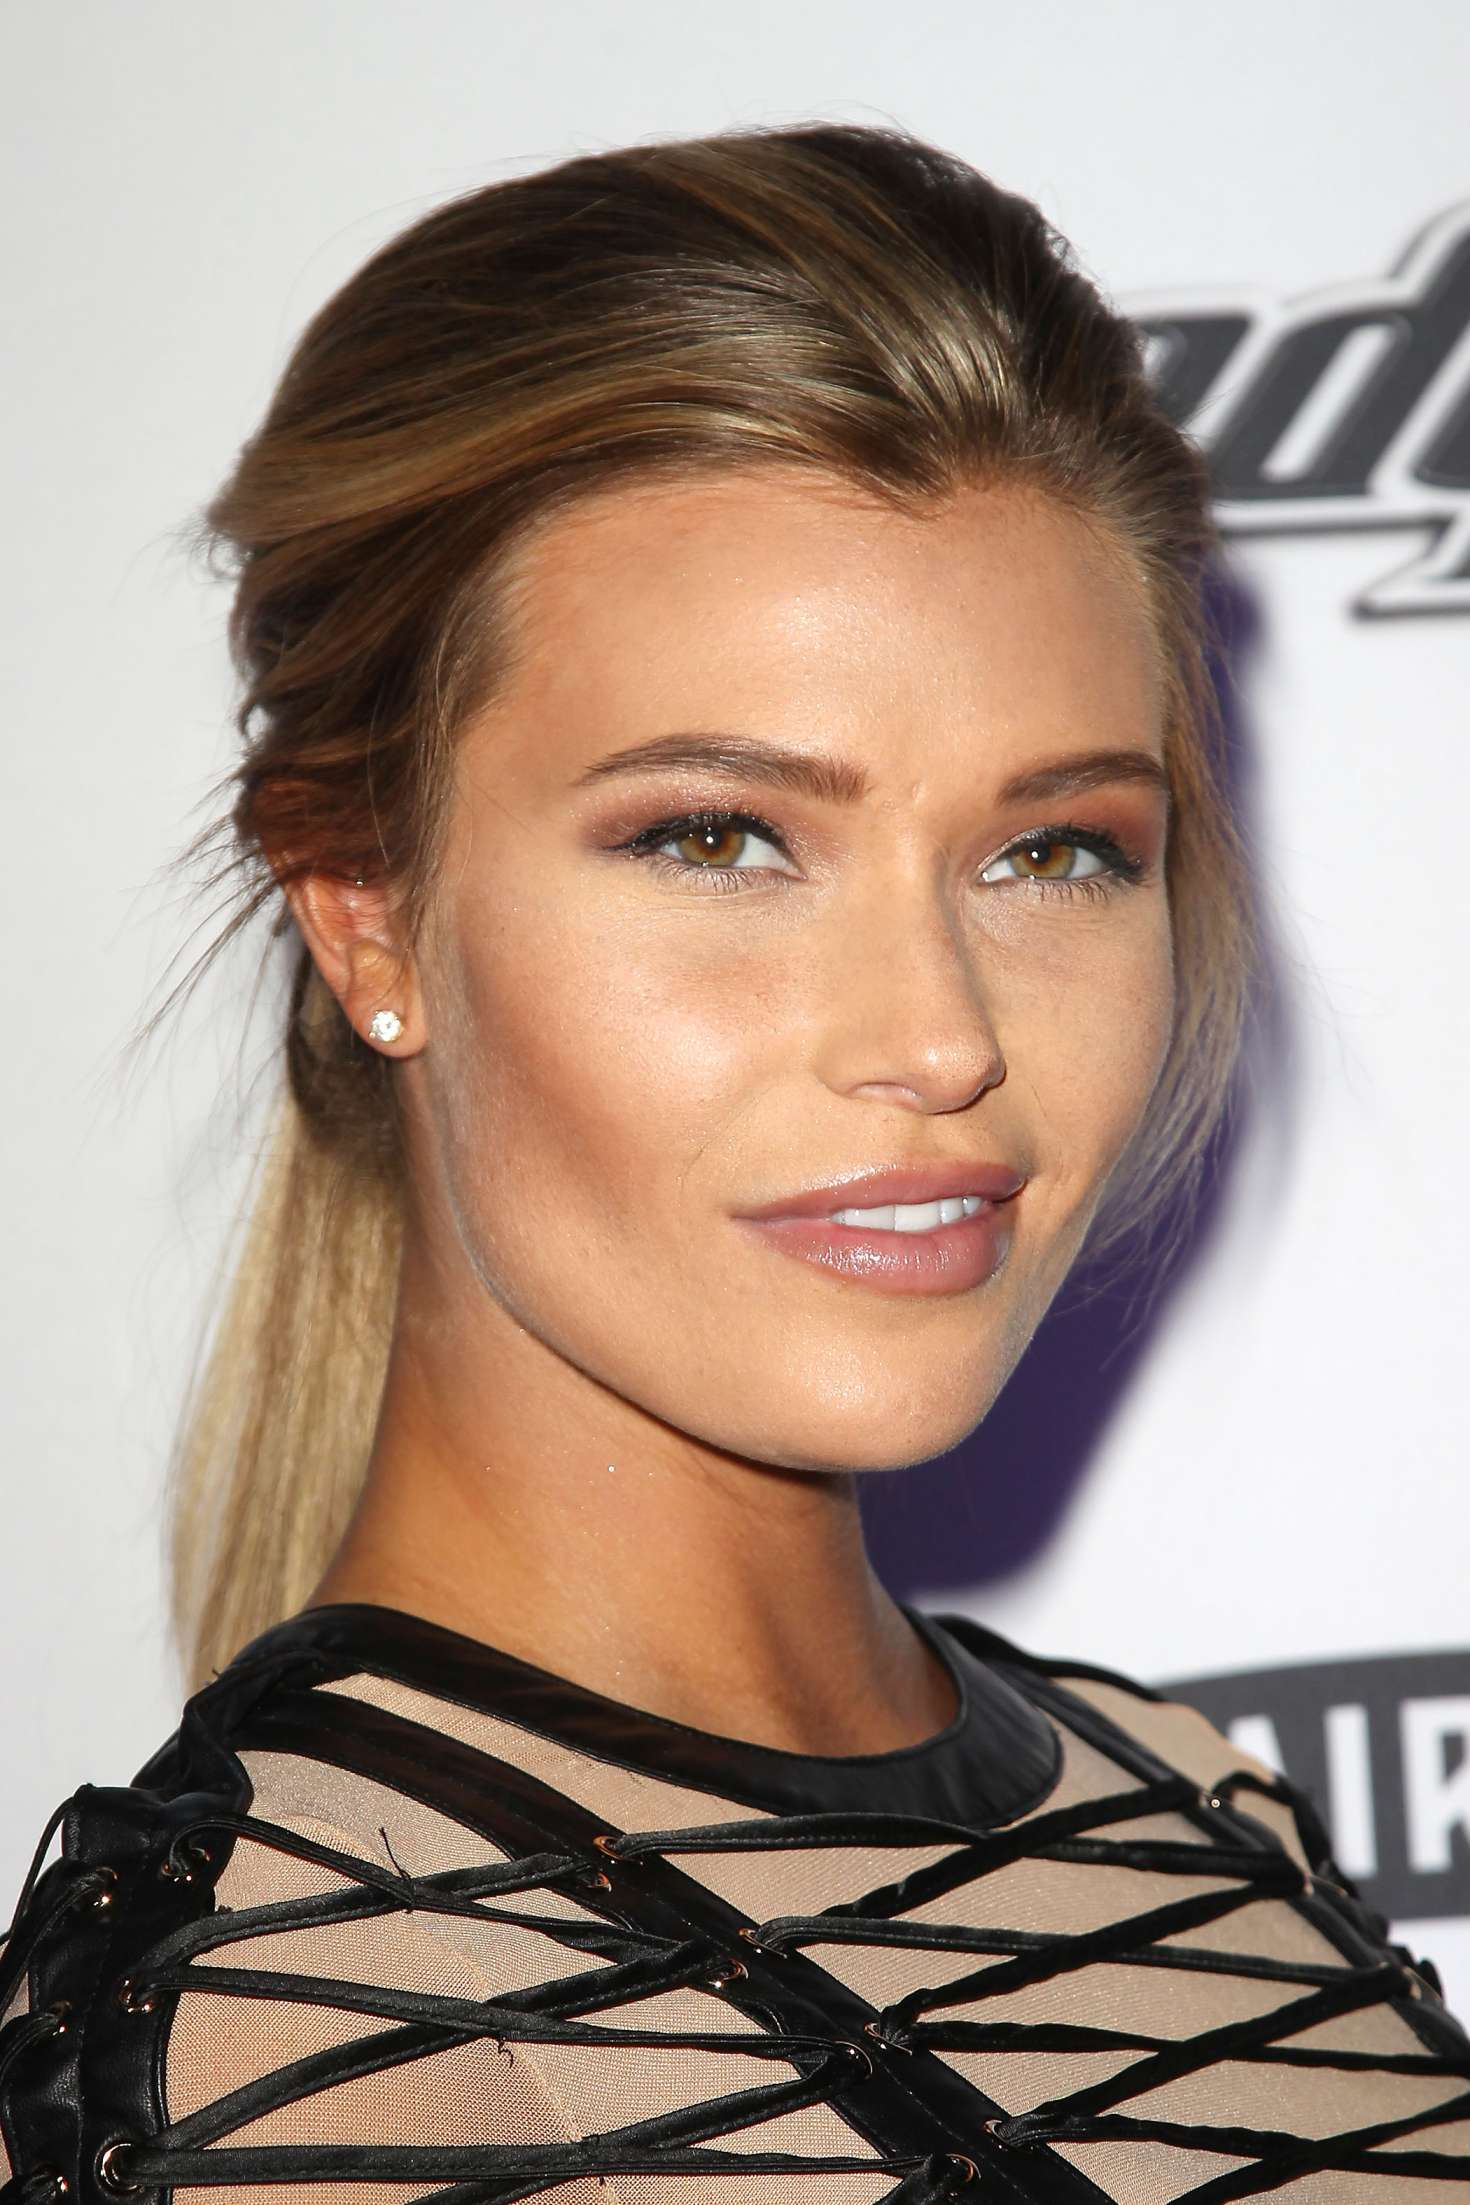 Samantha Hoopes: Sports Illustrated Swimsuit Edition